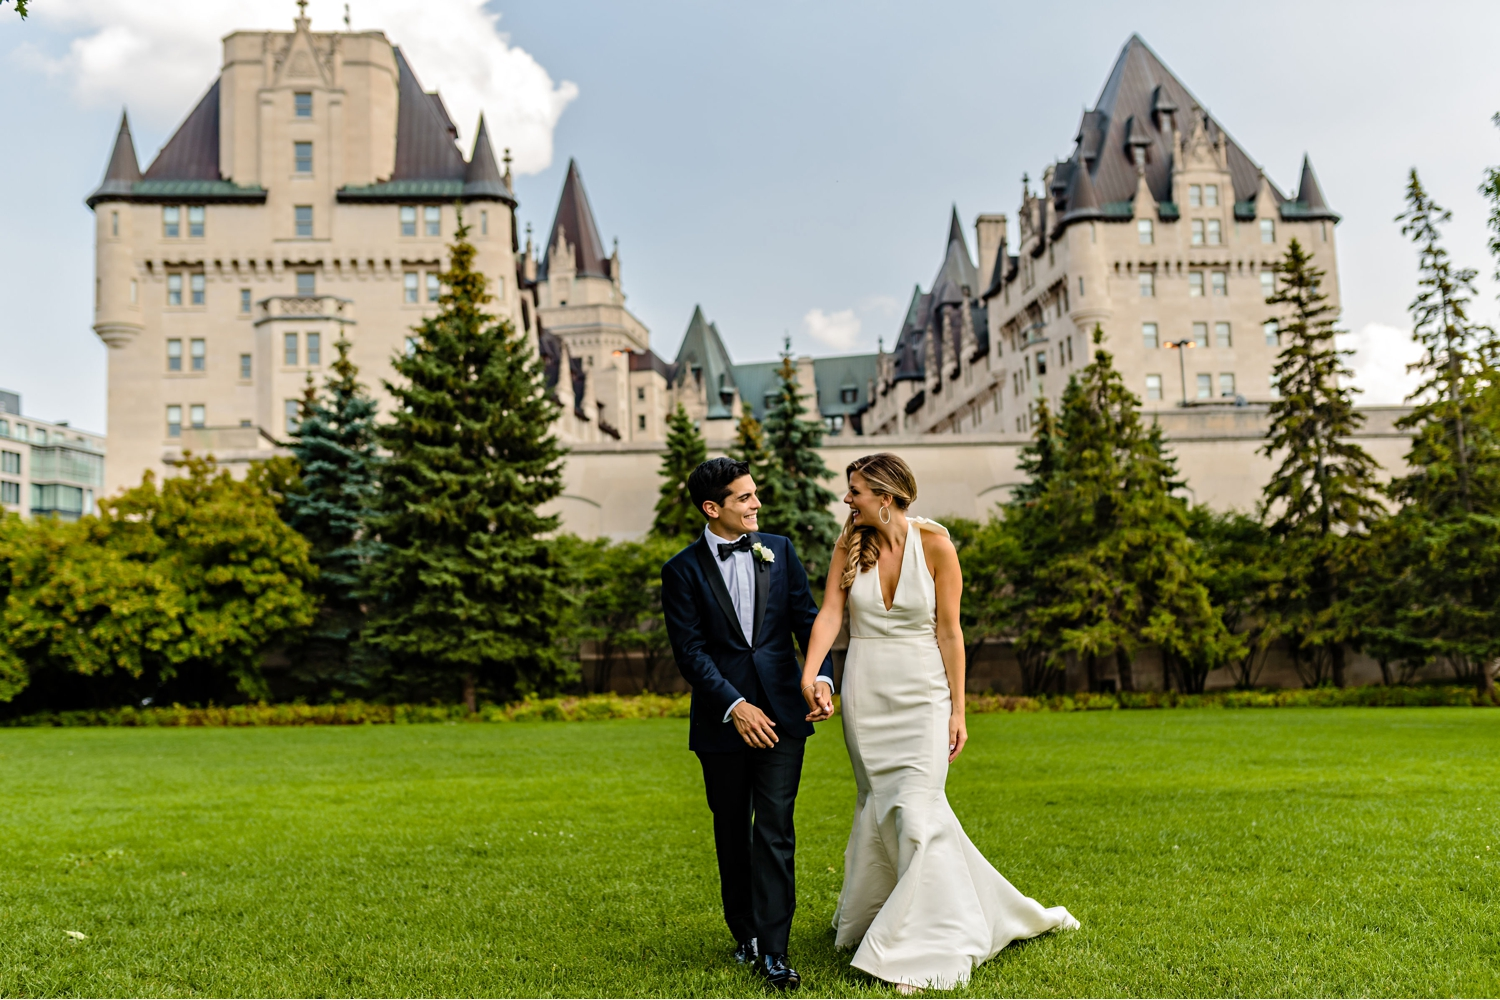 photo-of-bride-and-groom-with-the-chateau-laurier-in-the-background.jpg